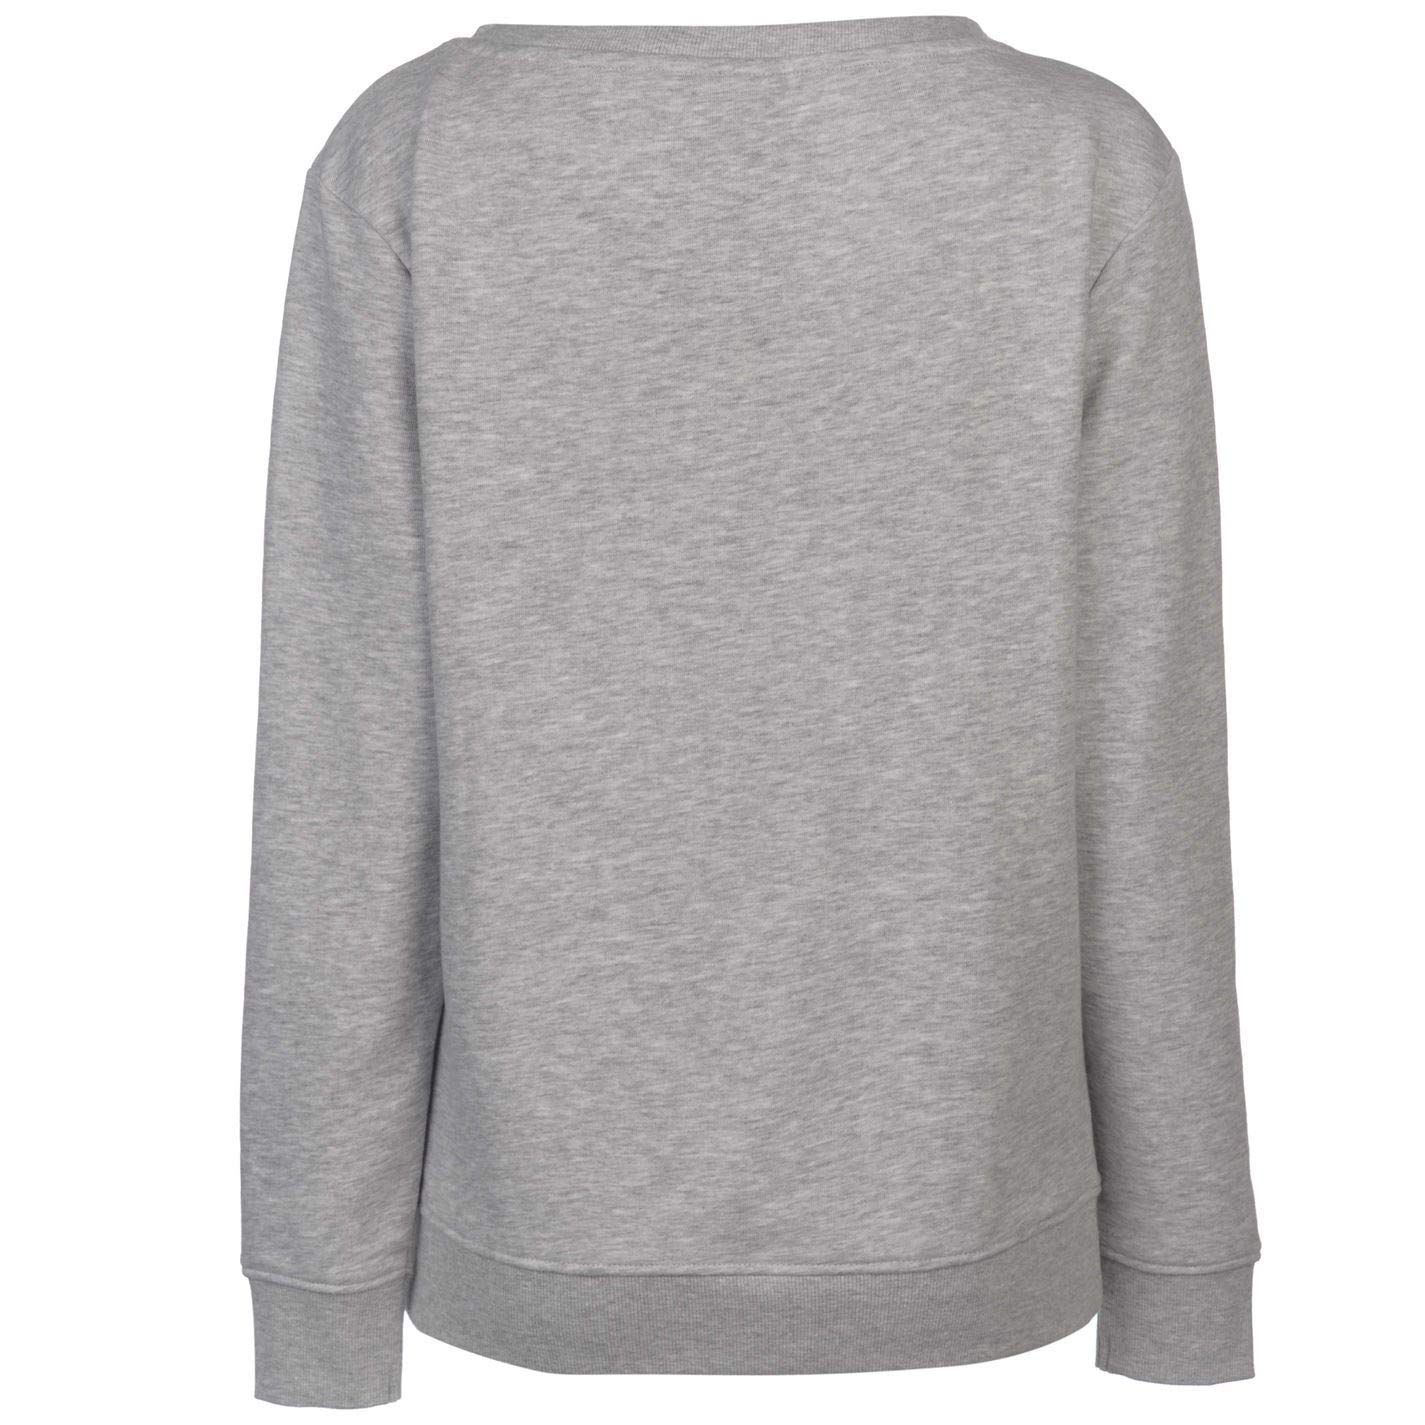 17b046ff0f Amazon.com   Abercrombie   Fitch FA England Crew Neck Sweatshirt Womens  Grey Football Soccer Sweater Pullover Top   Sports   Outdoors